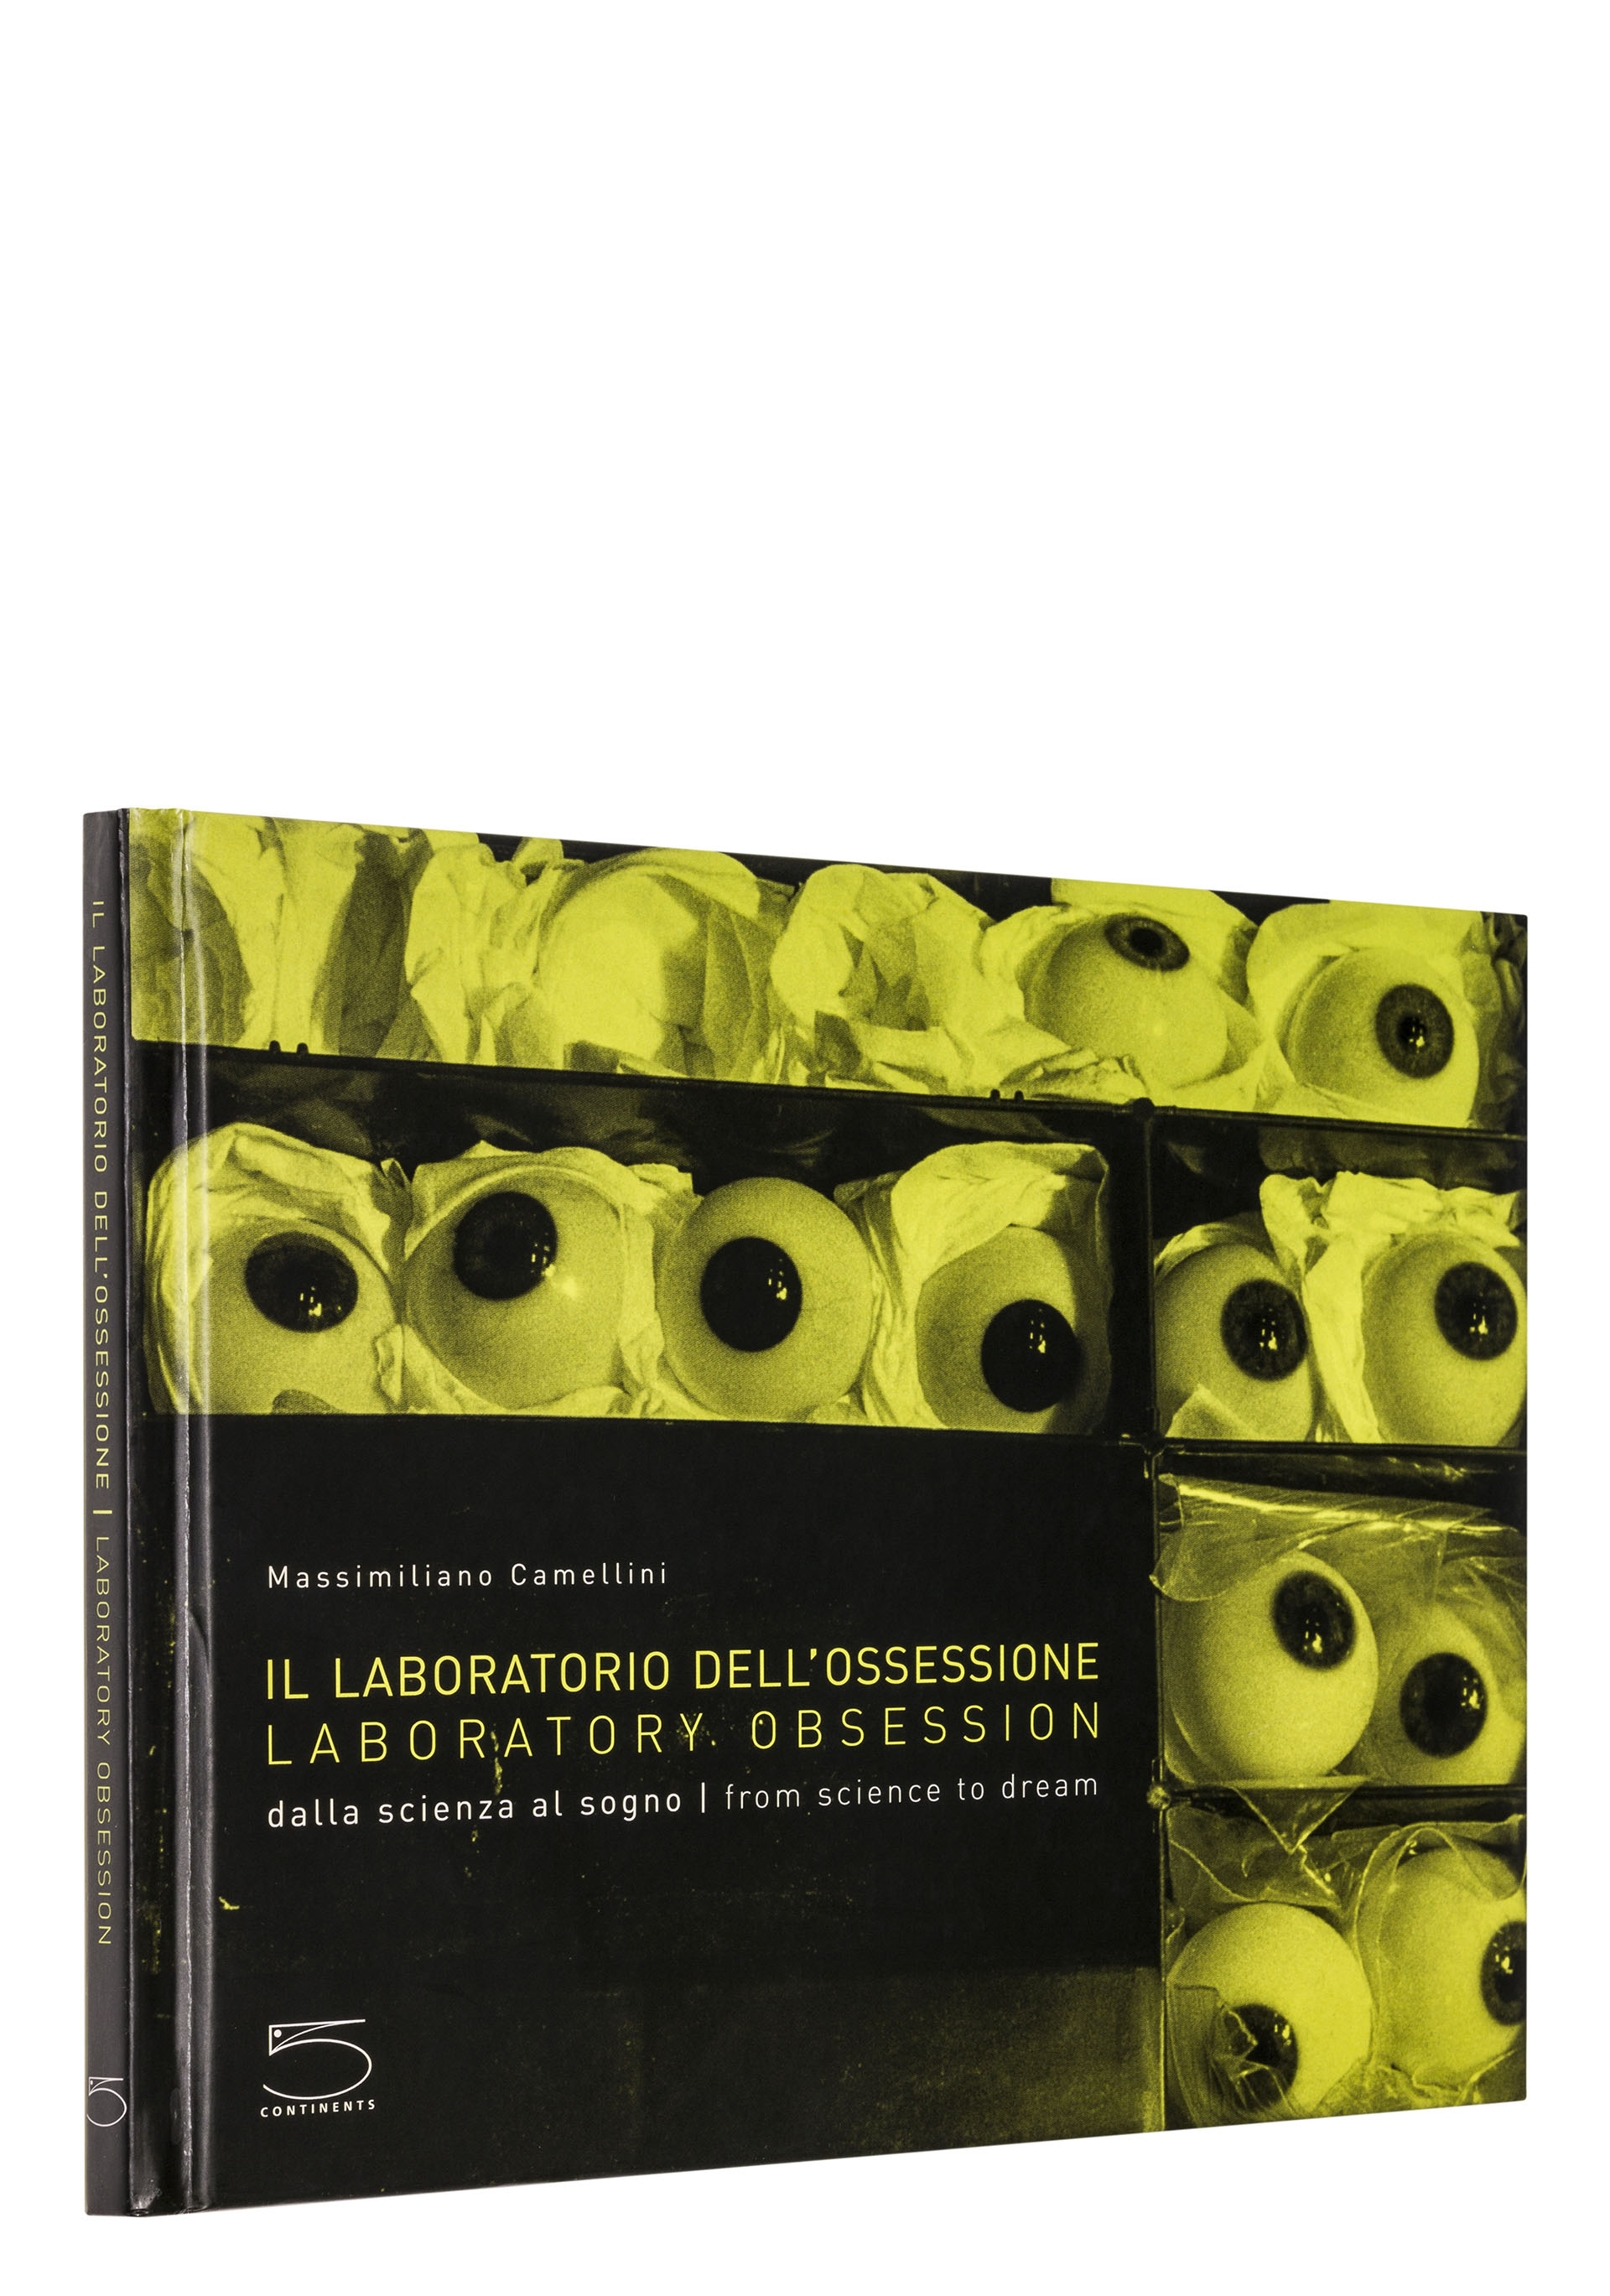 Il laboratorio dell'ossessione | Laboratory obsession